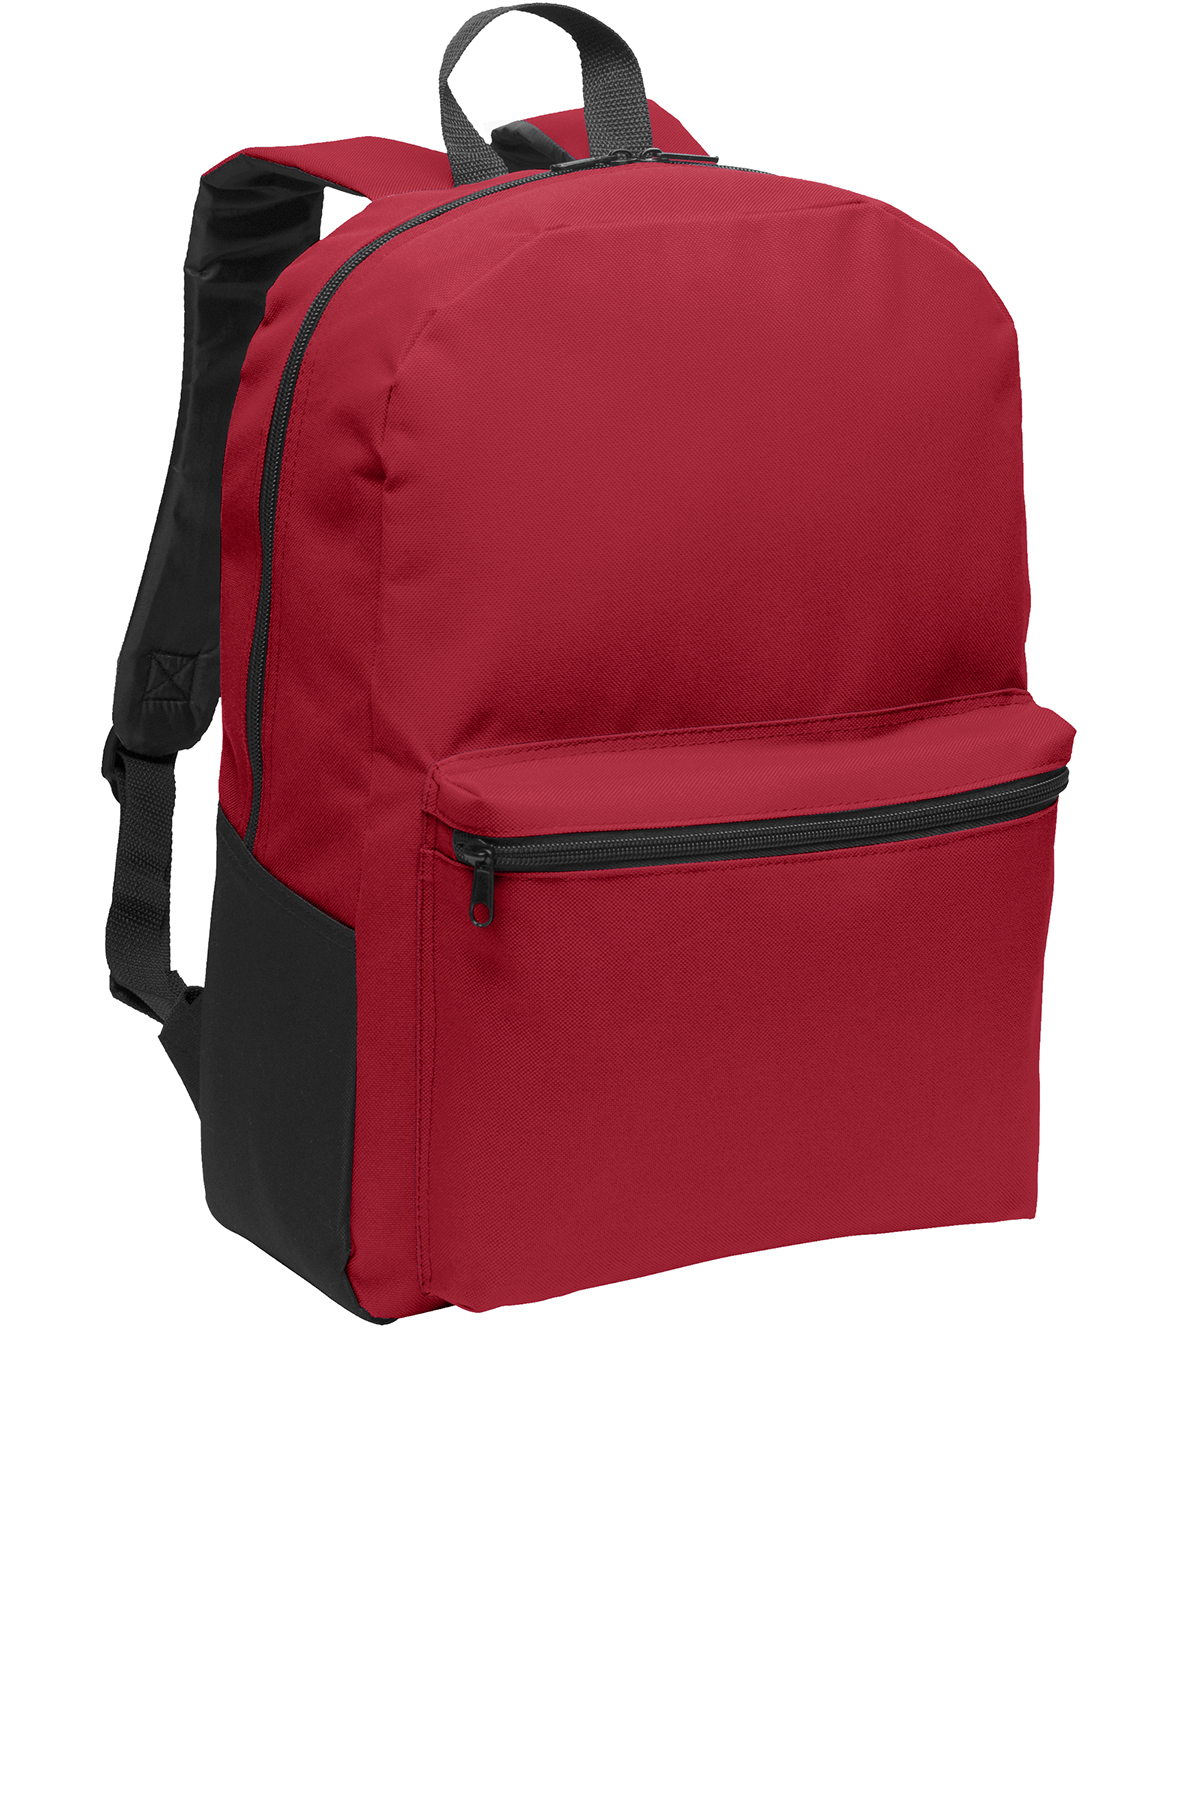 Port Authority BG203 Value Backpack